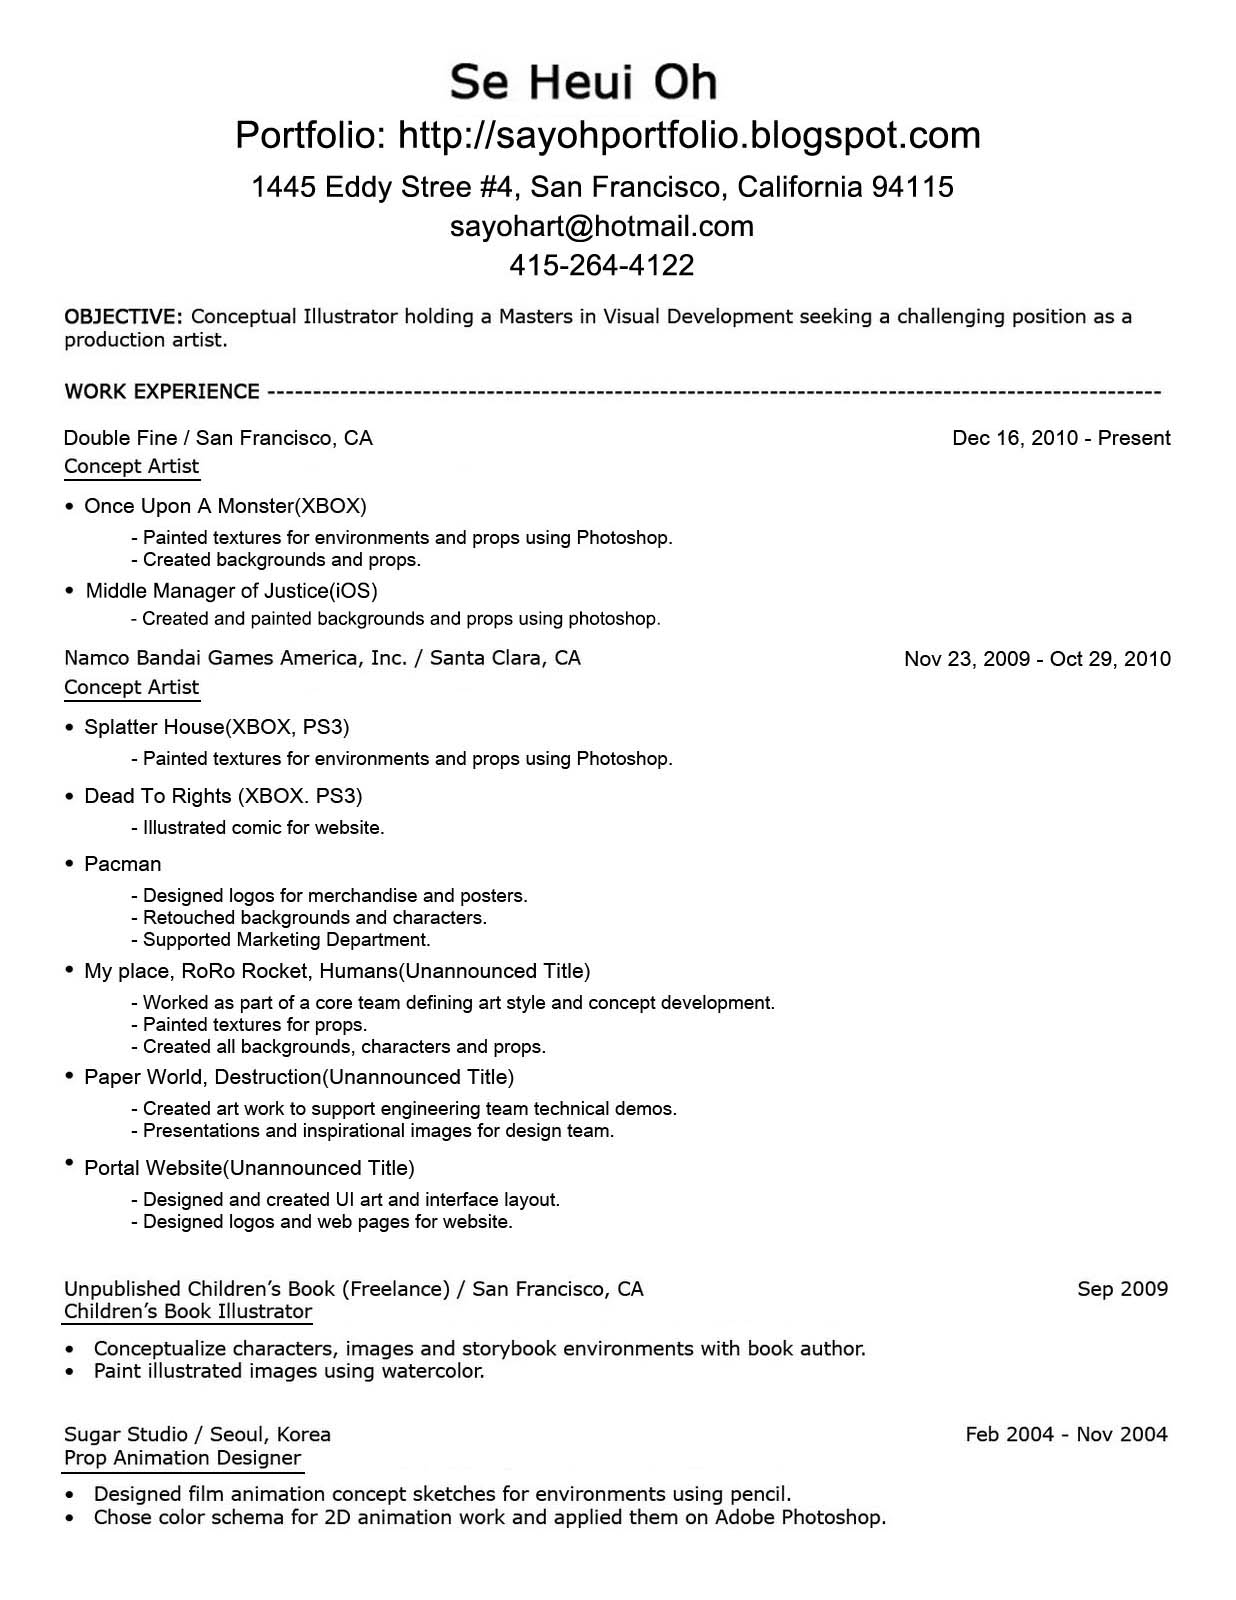 Emailing Resume What To Say